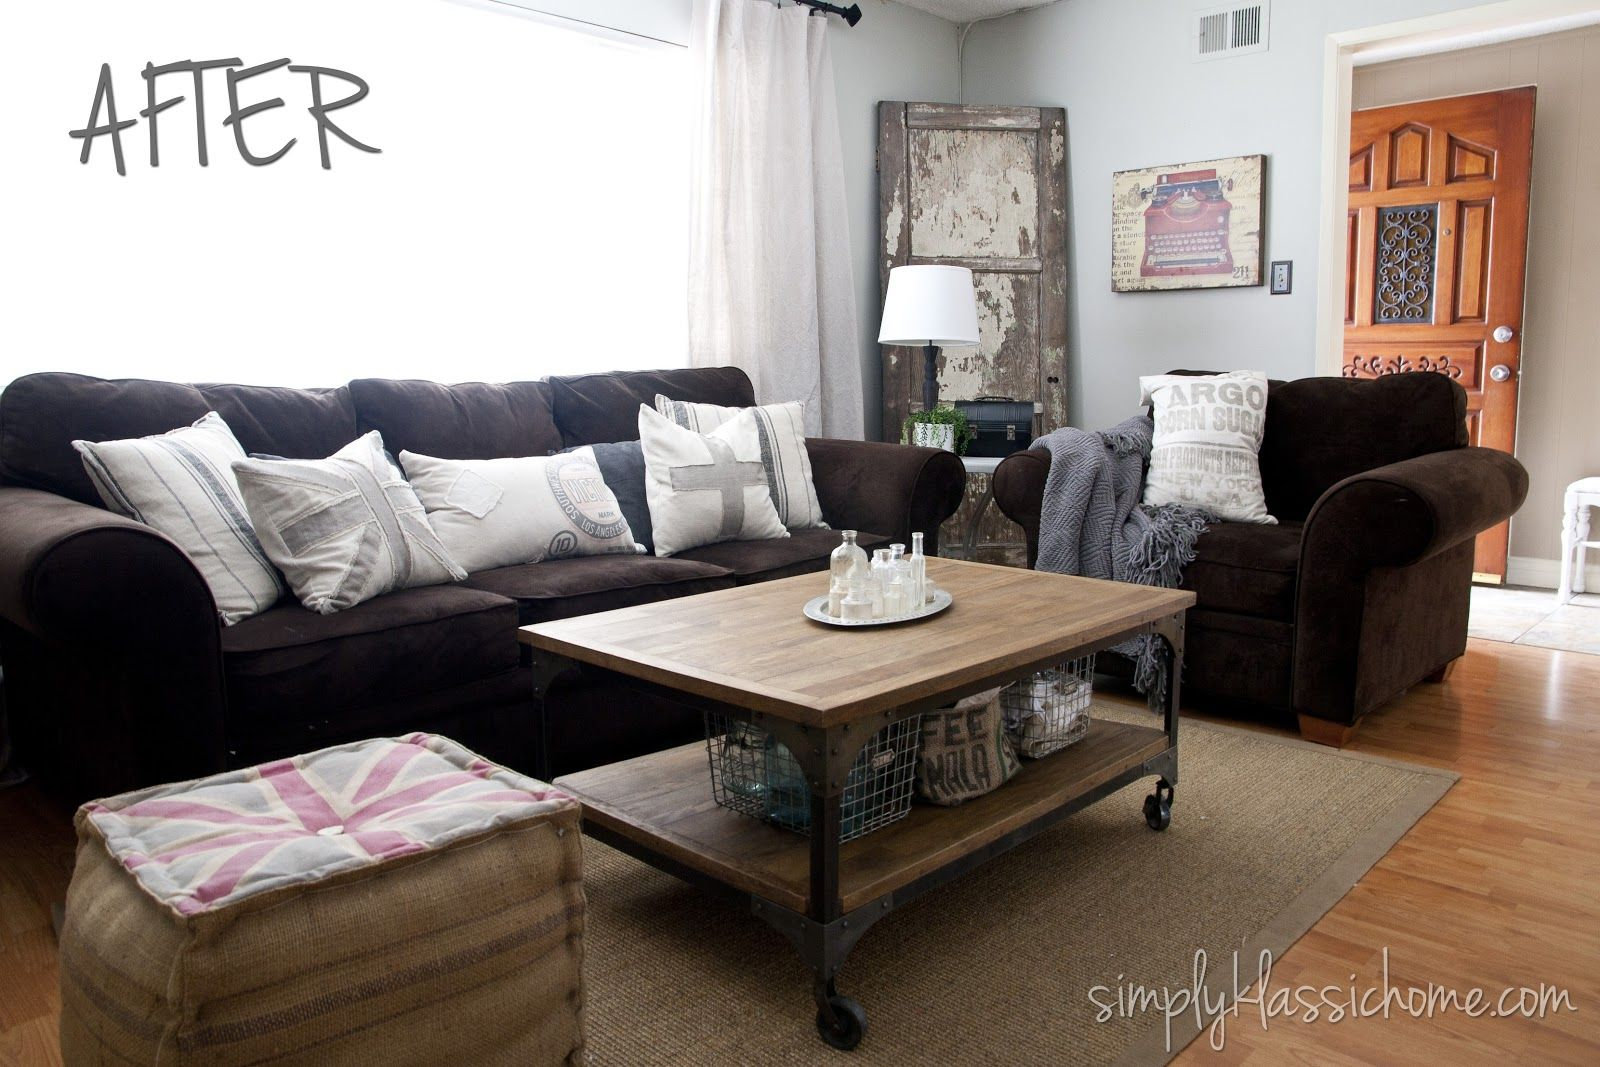 Simply Klassic Home Industrial Blend Living Room Makeover